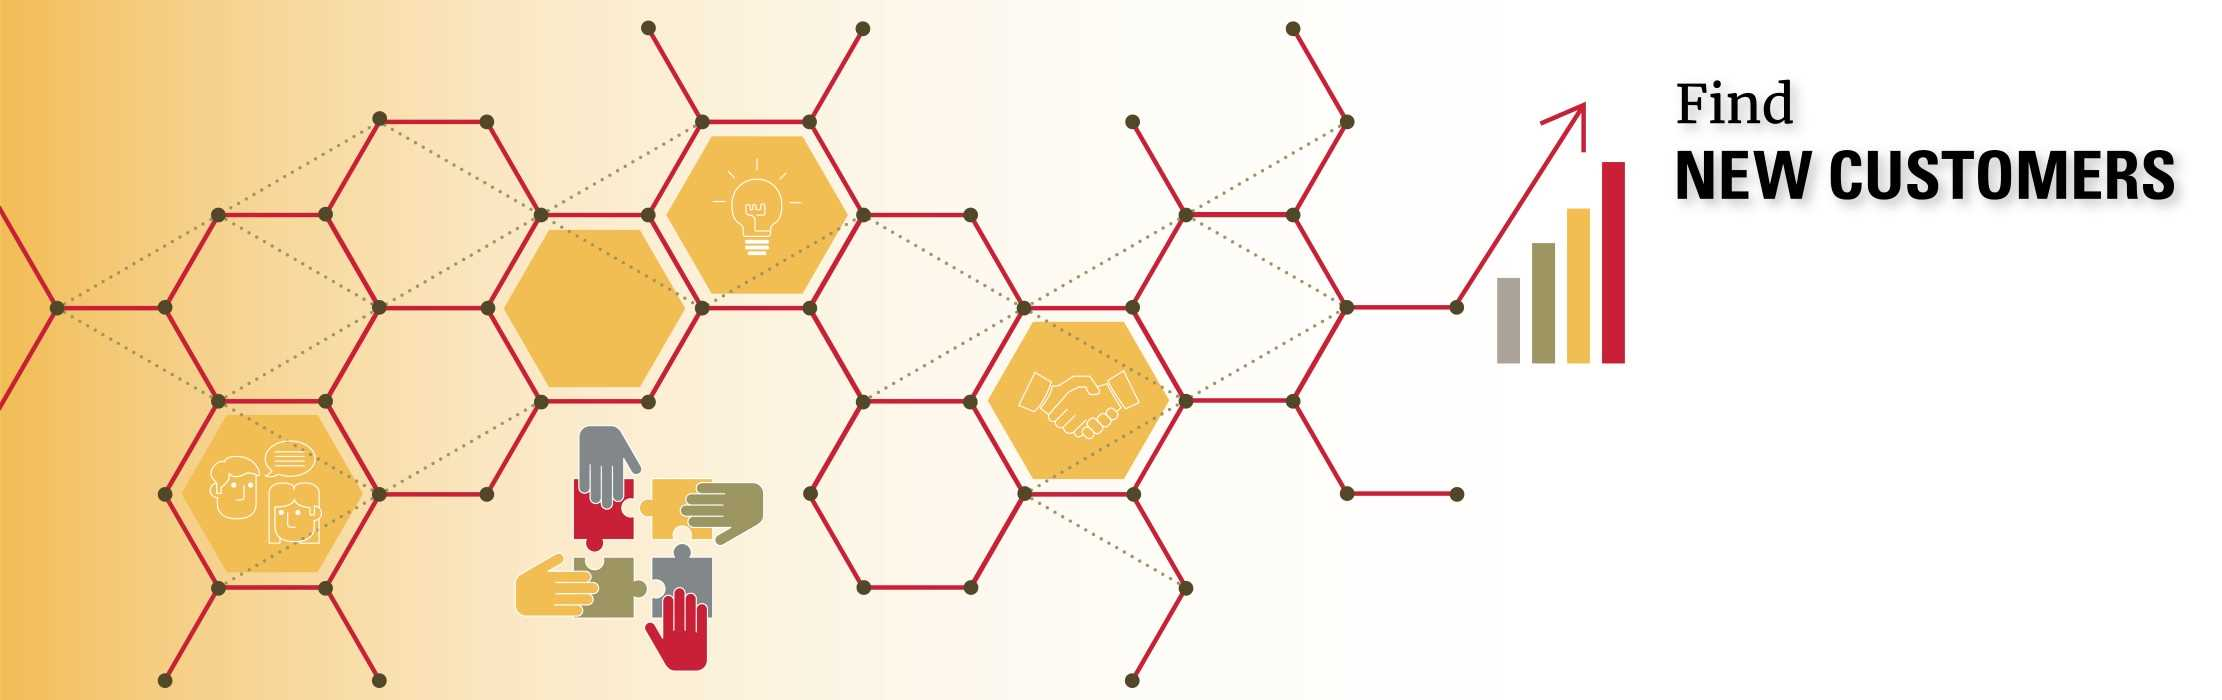 Hexagons of connections: Find New Customers.